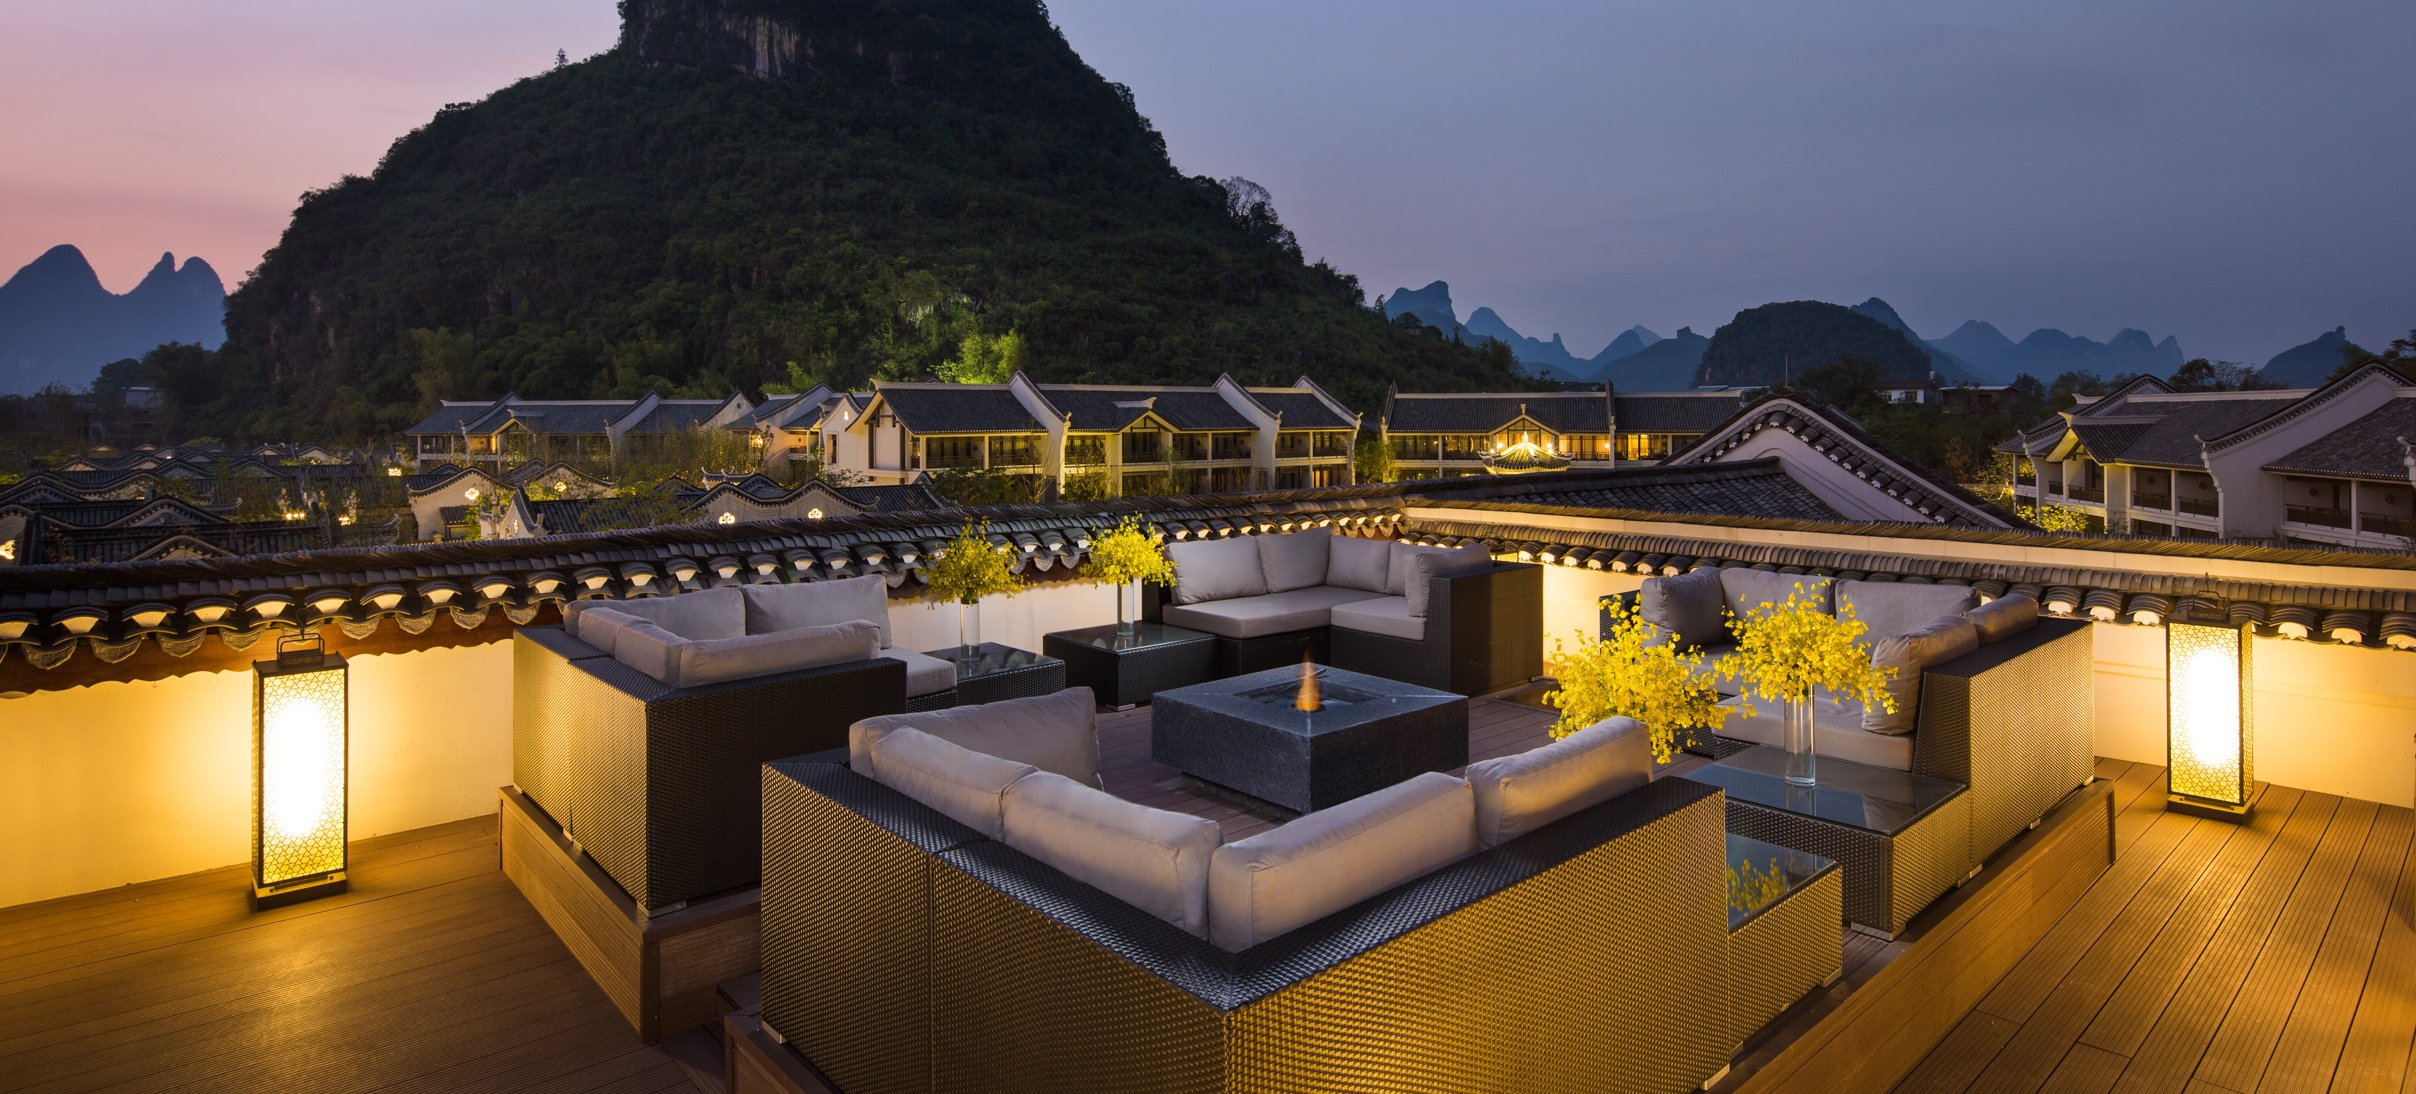 tailor-made-luxury-holidays-in-china